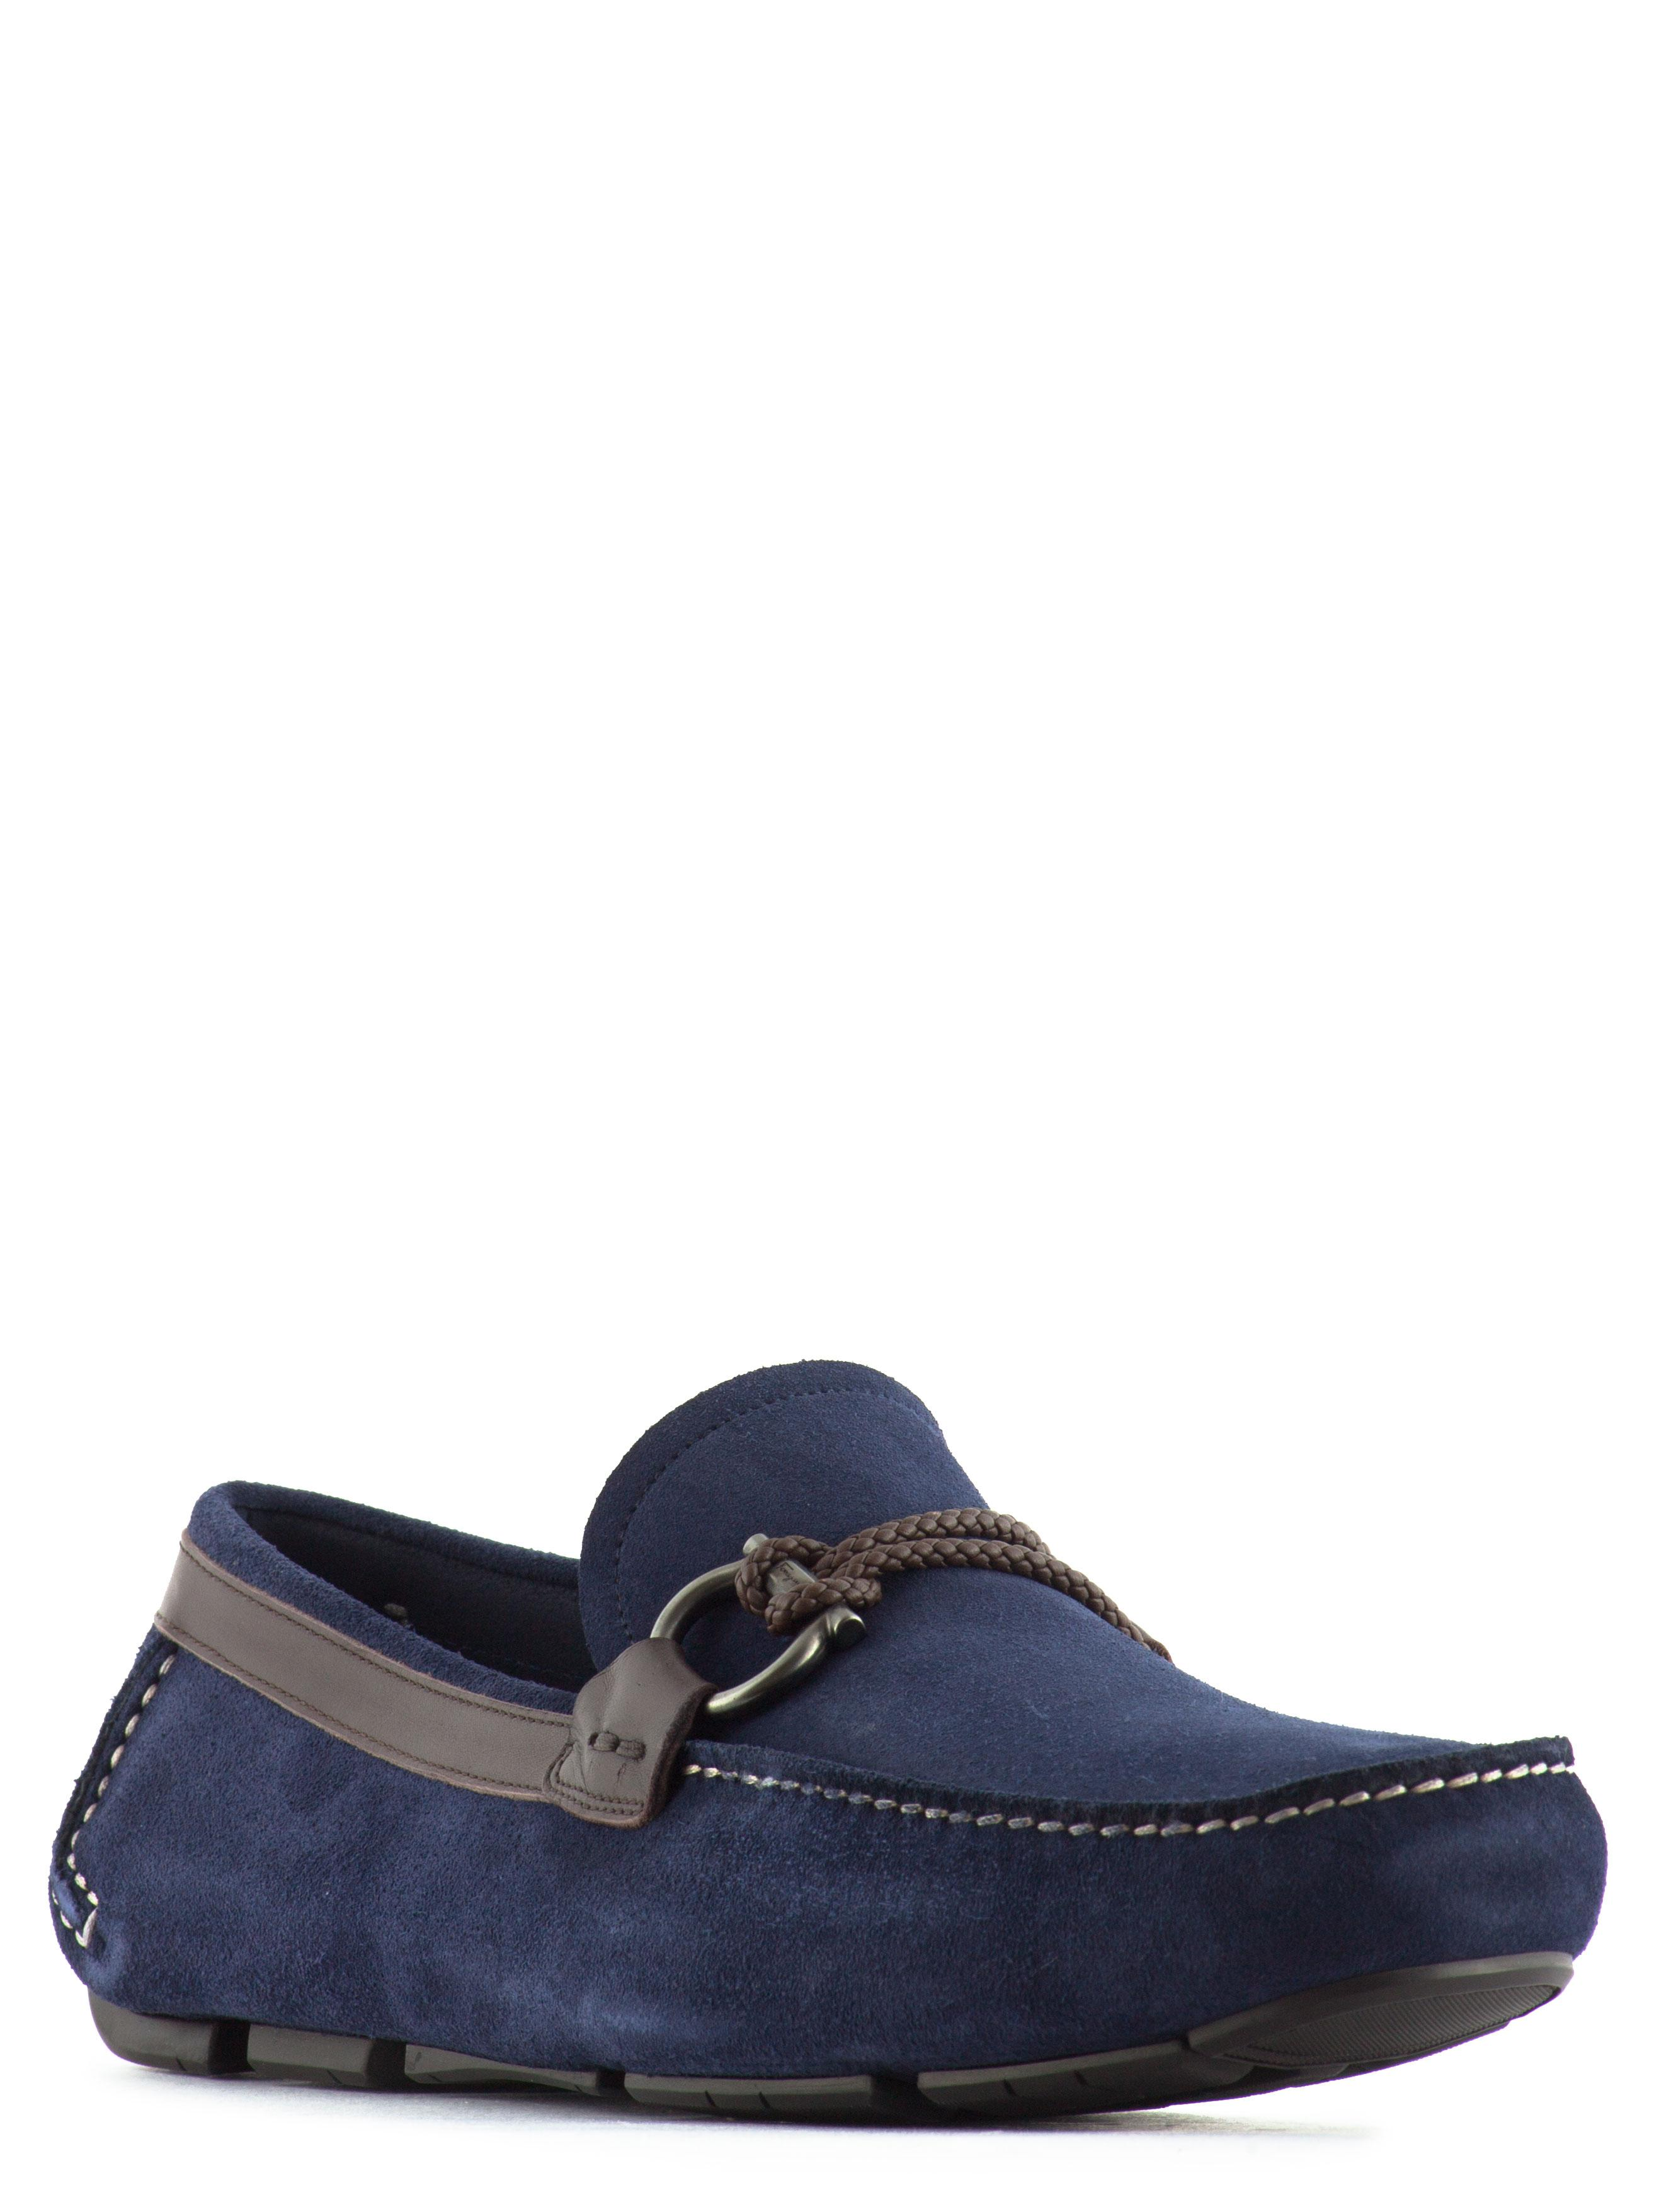 Catesby Suede Shoes Red Sole